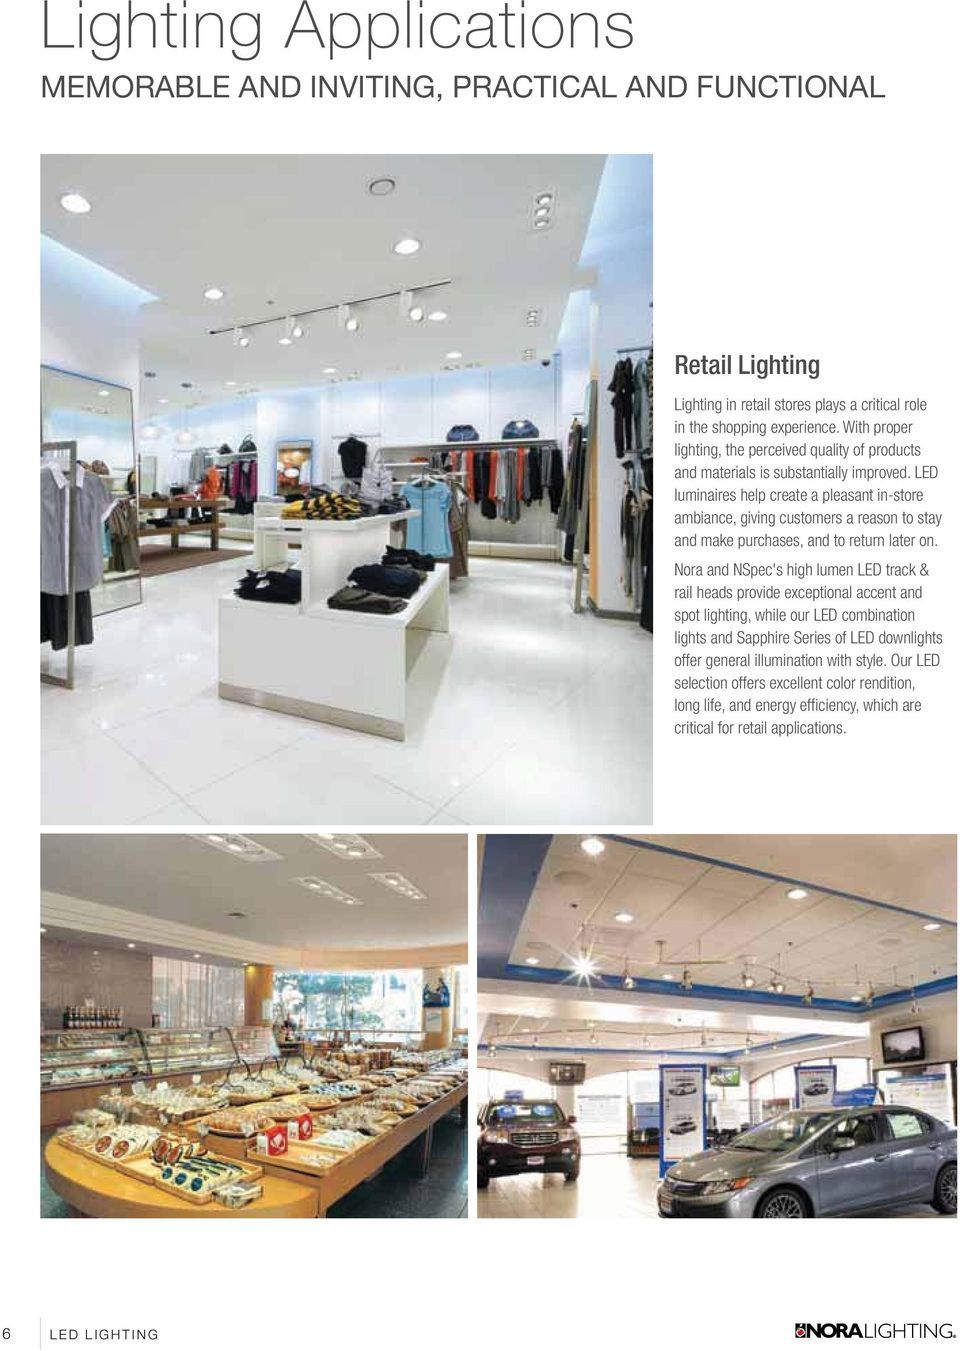 LED luminaires help create a pleasant in-store ambiance, giving customers a reason to stay and make purchases, and to return later on.